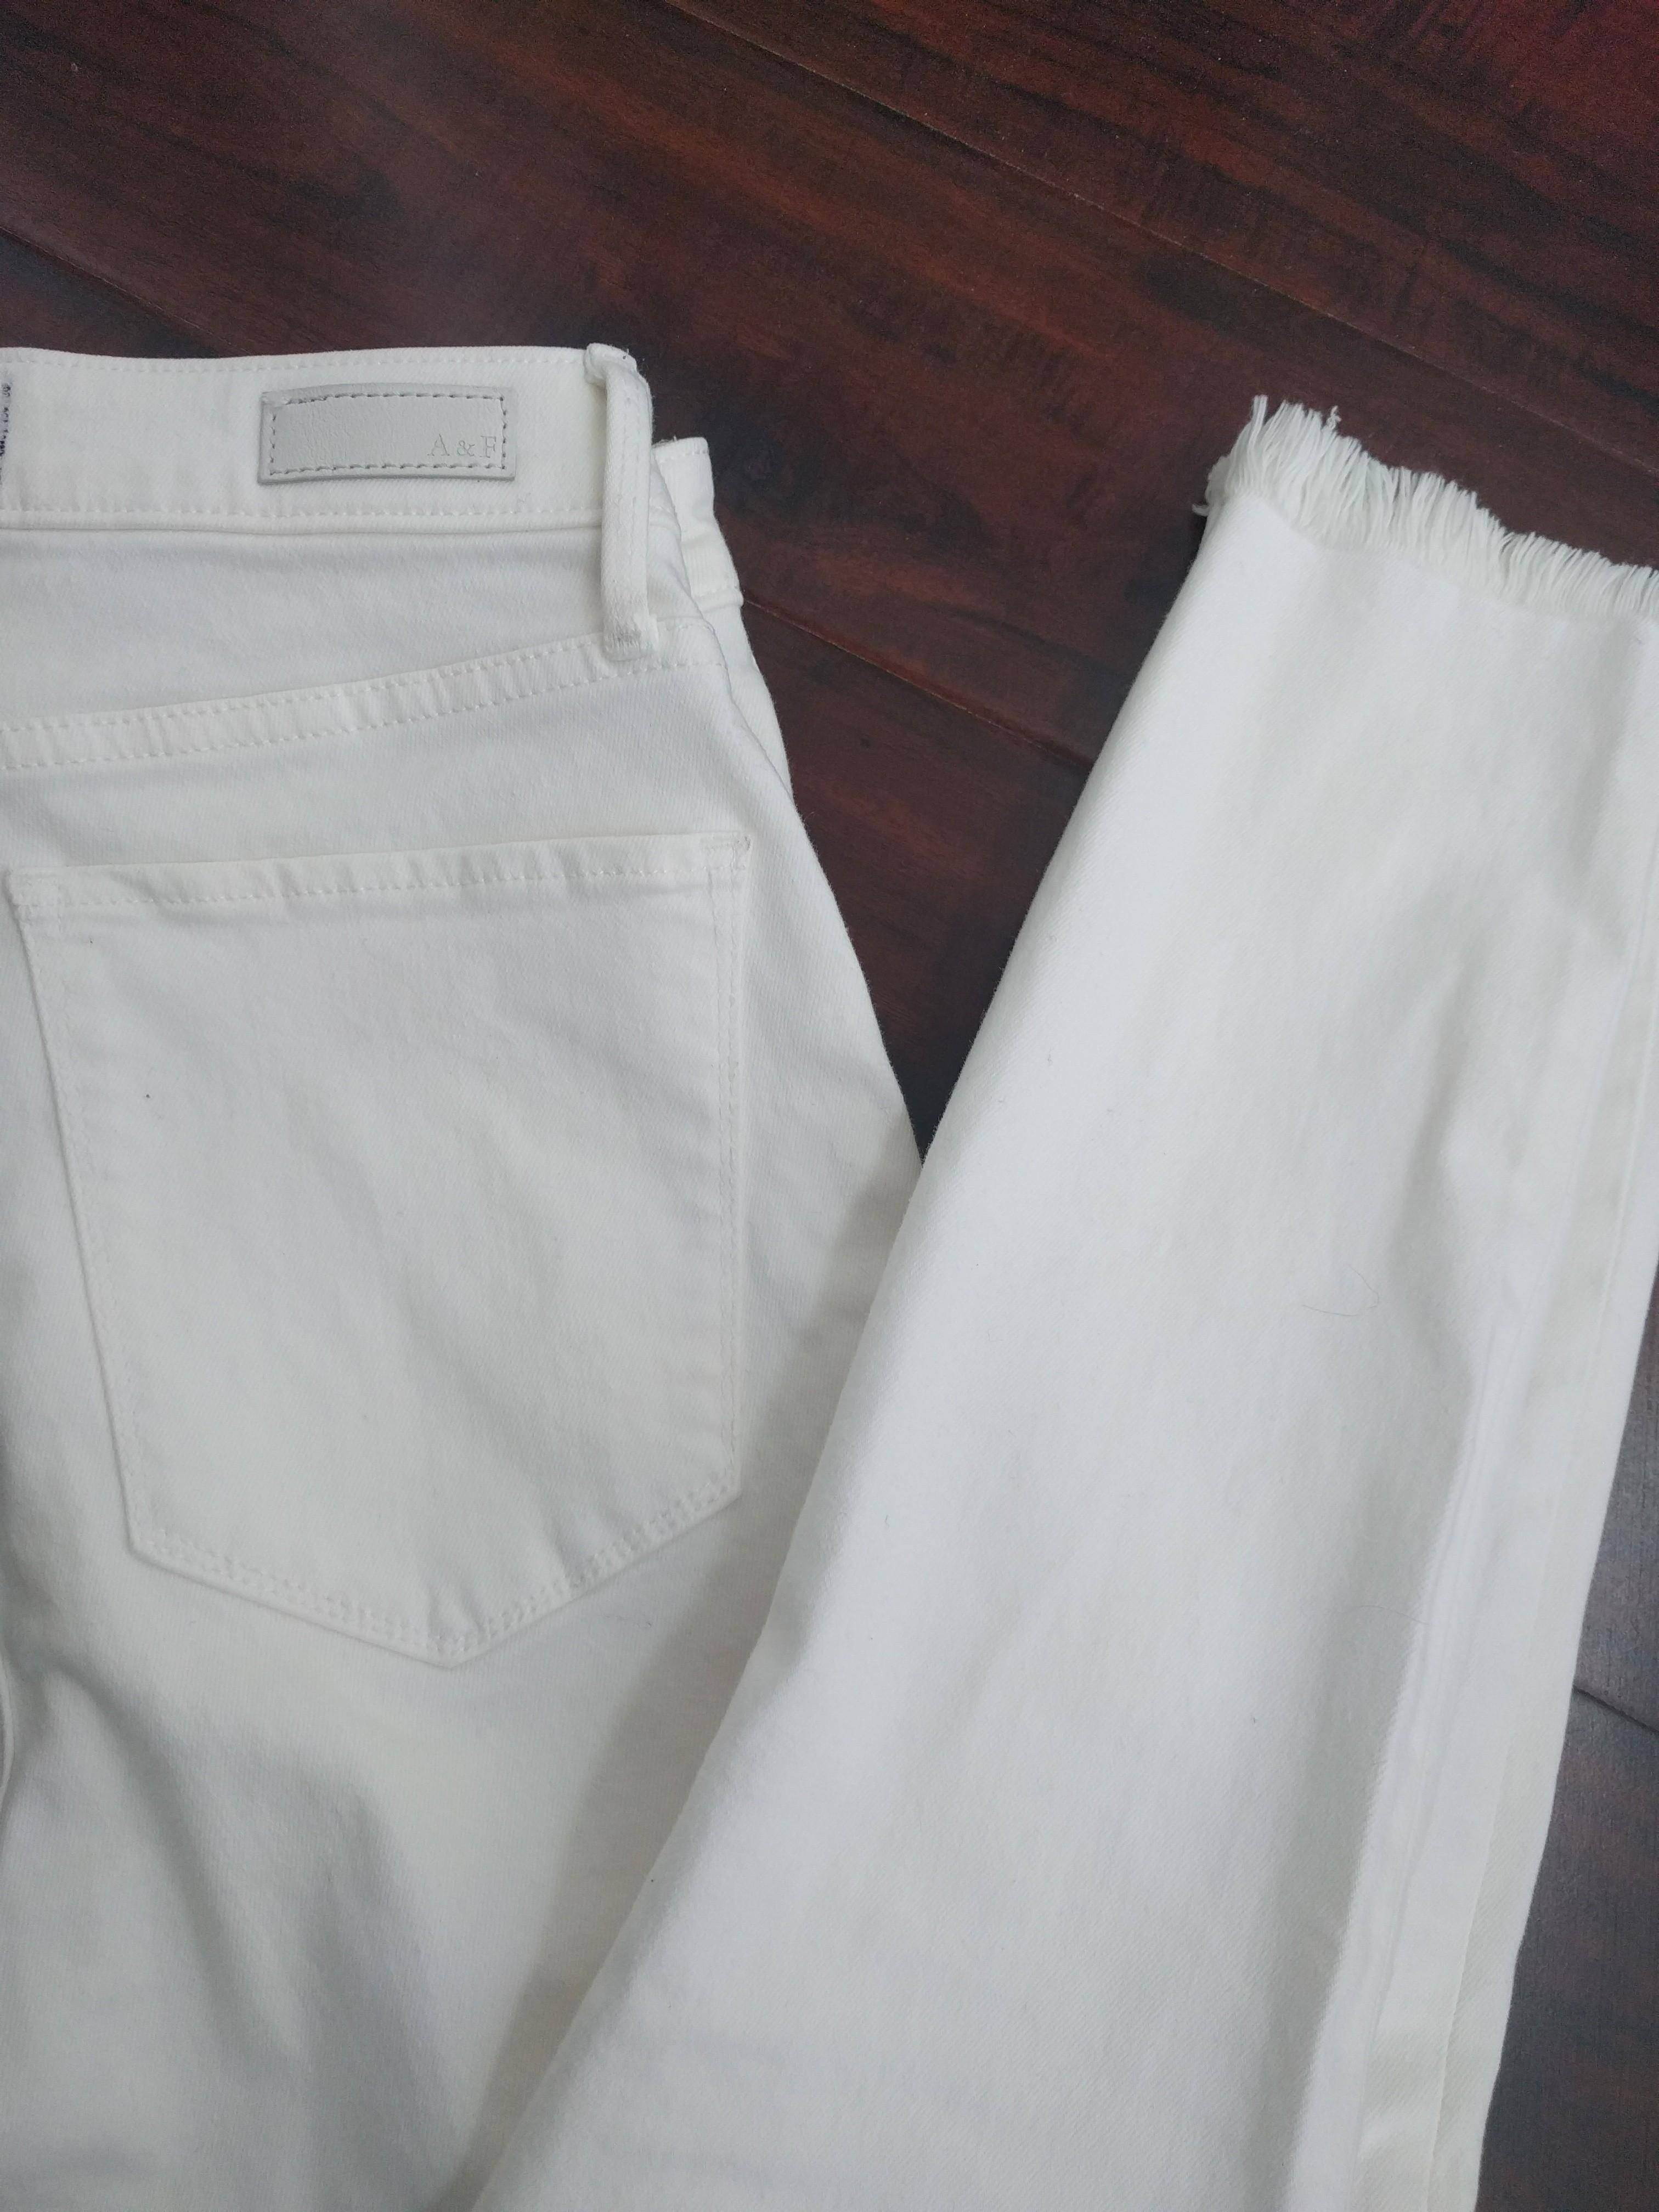 Brand New White Jeans (jegging style) 26 short